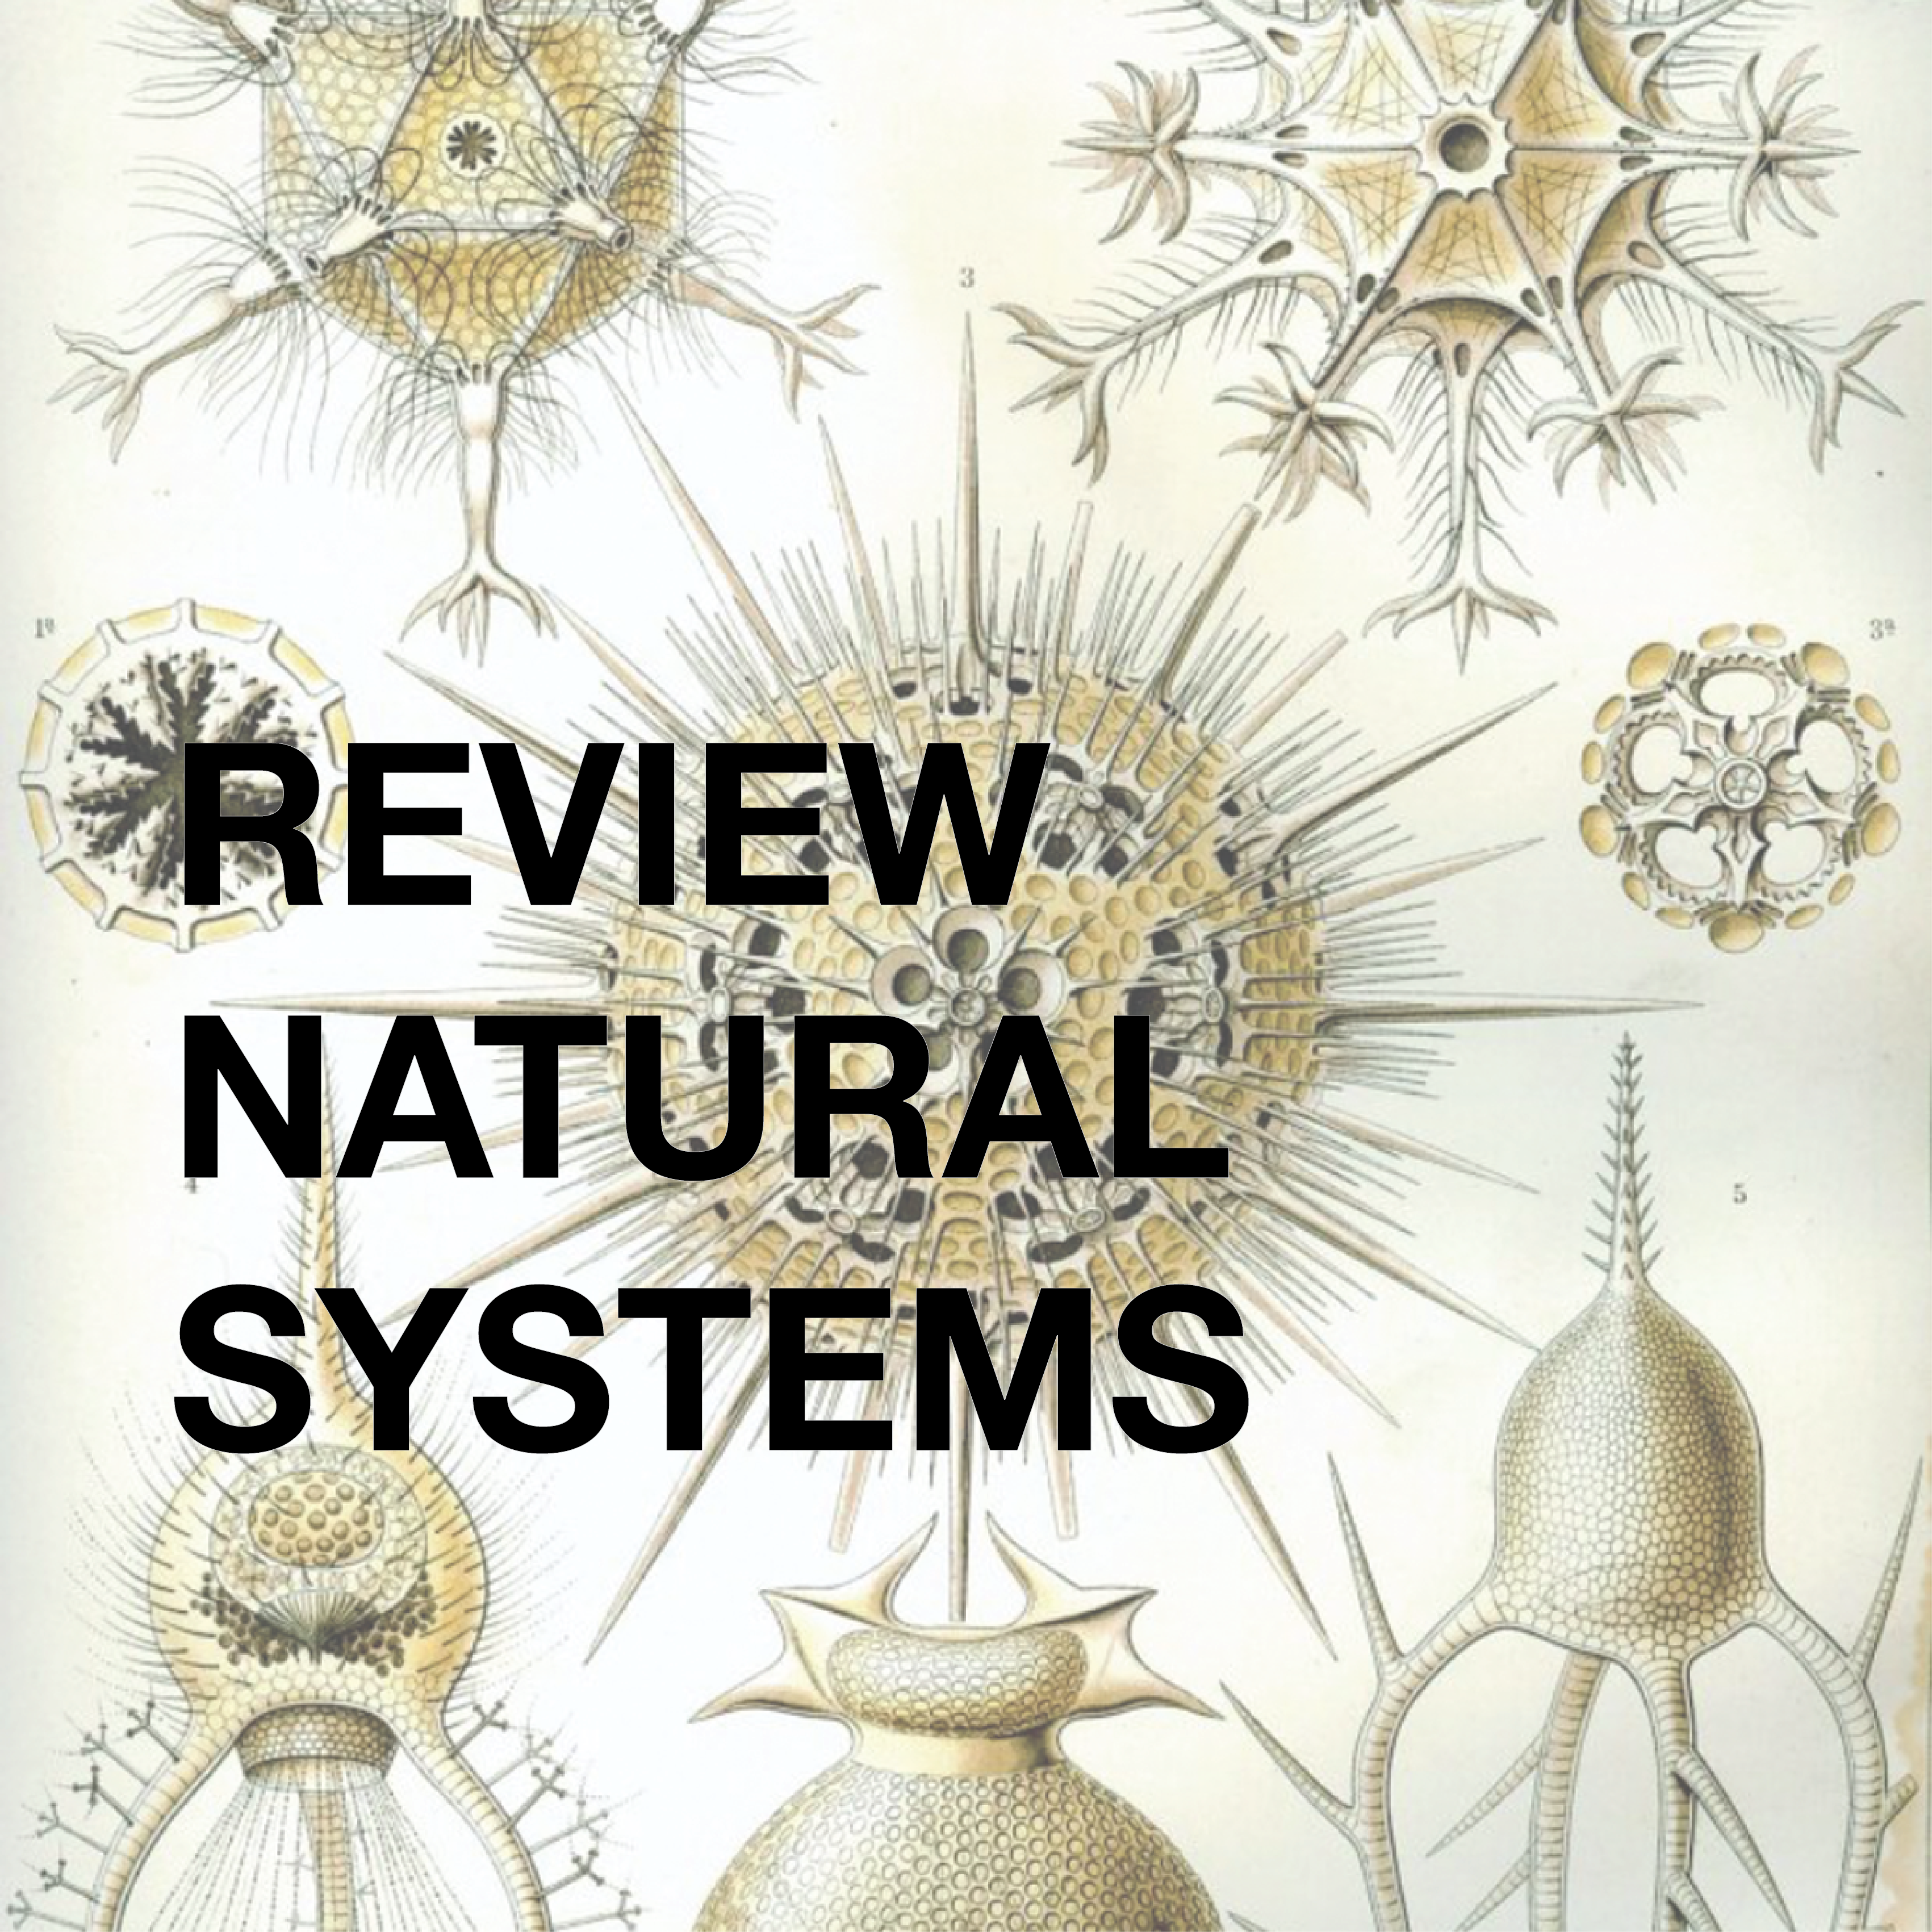 REVIEW NATURAL SYSTEMS